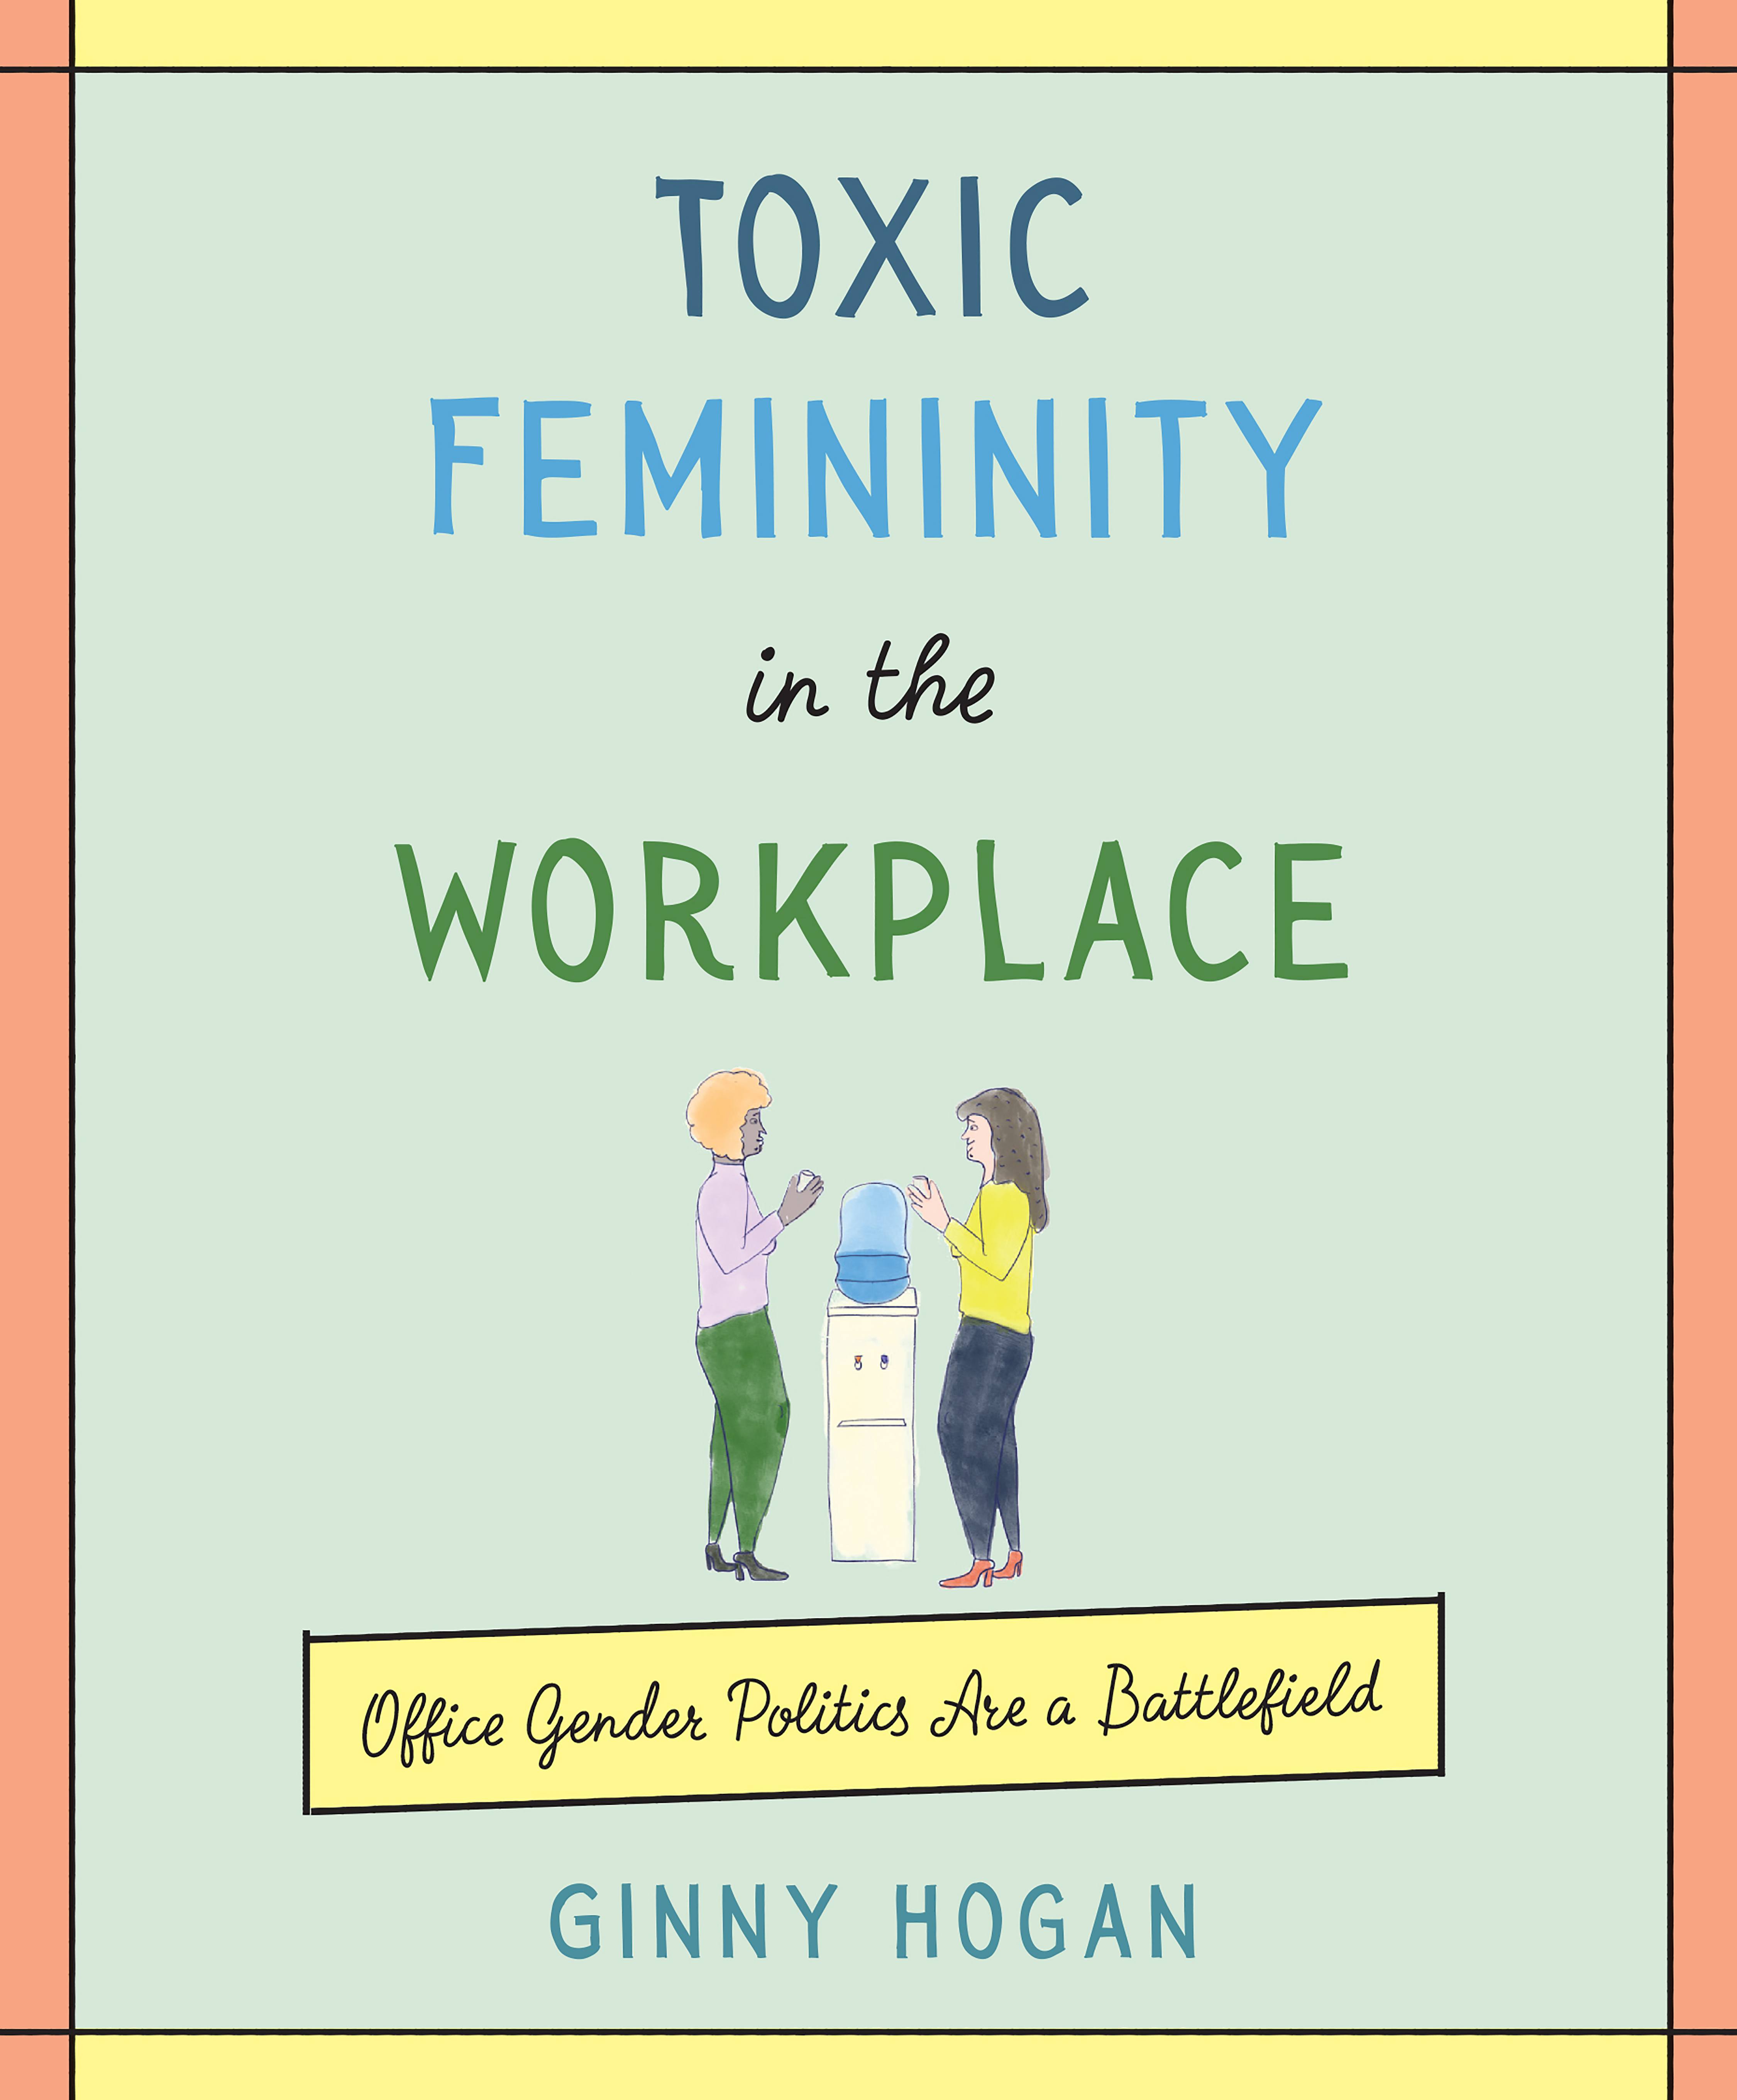 Book Launch: Toxic Femininity in the Workplace by Ginny Hogan